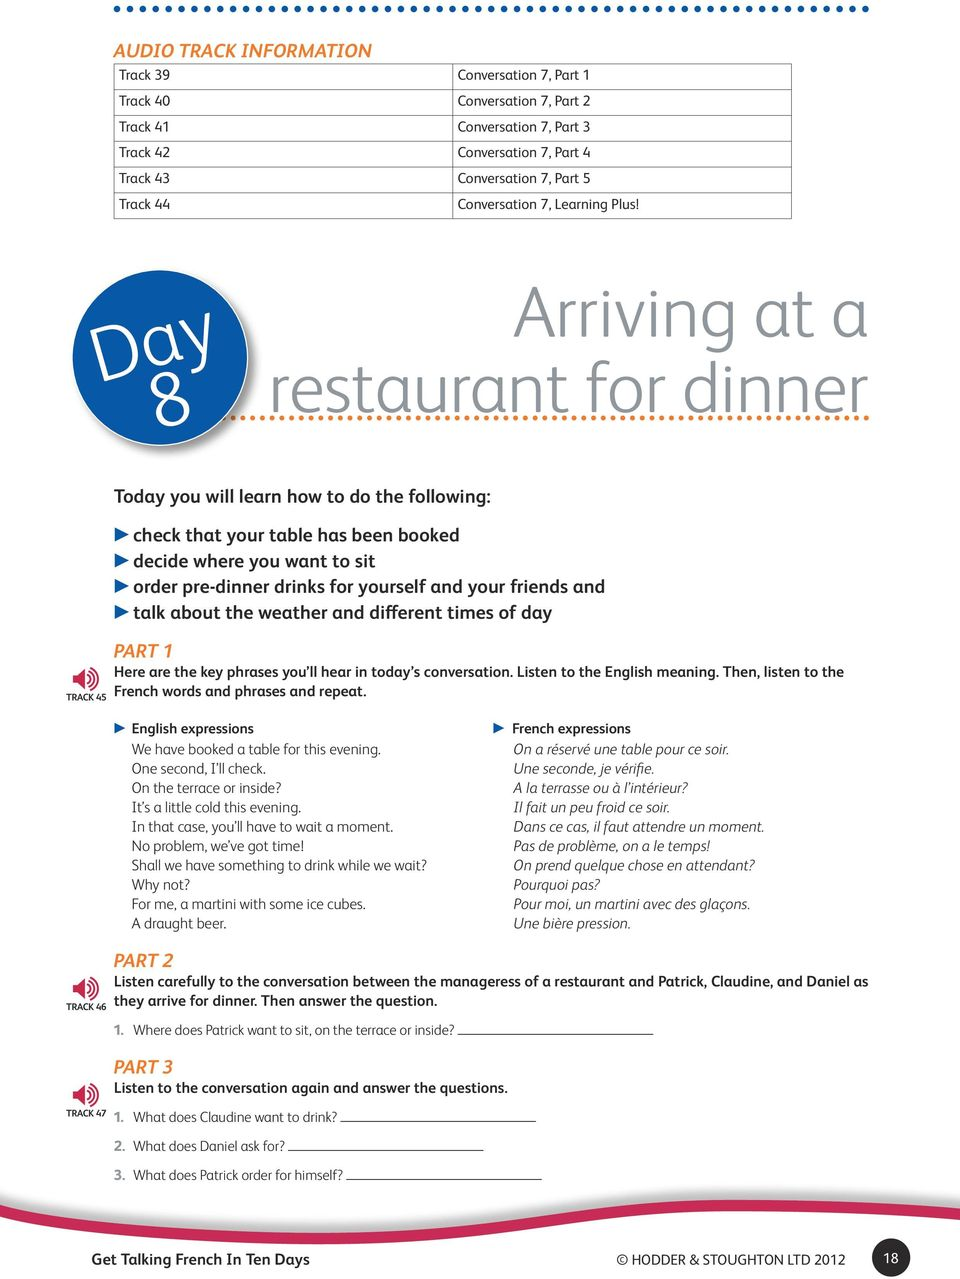 Day 8 Arriving at a restaurant for dinner Track 45 Today you will learn how to do the following: check that your table has been booked decide where you want to sit order pre-dinner drinks for